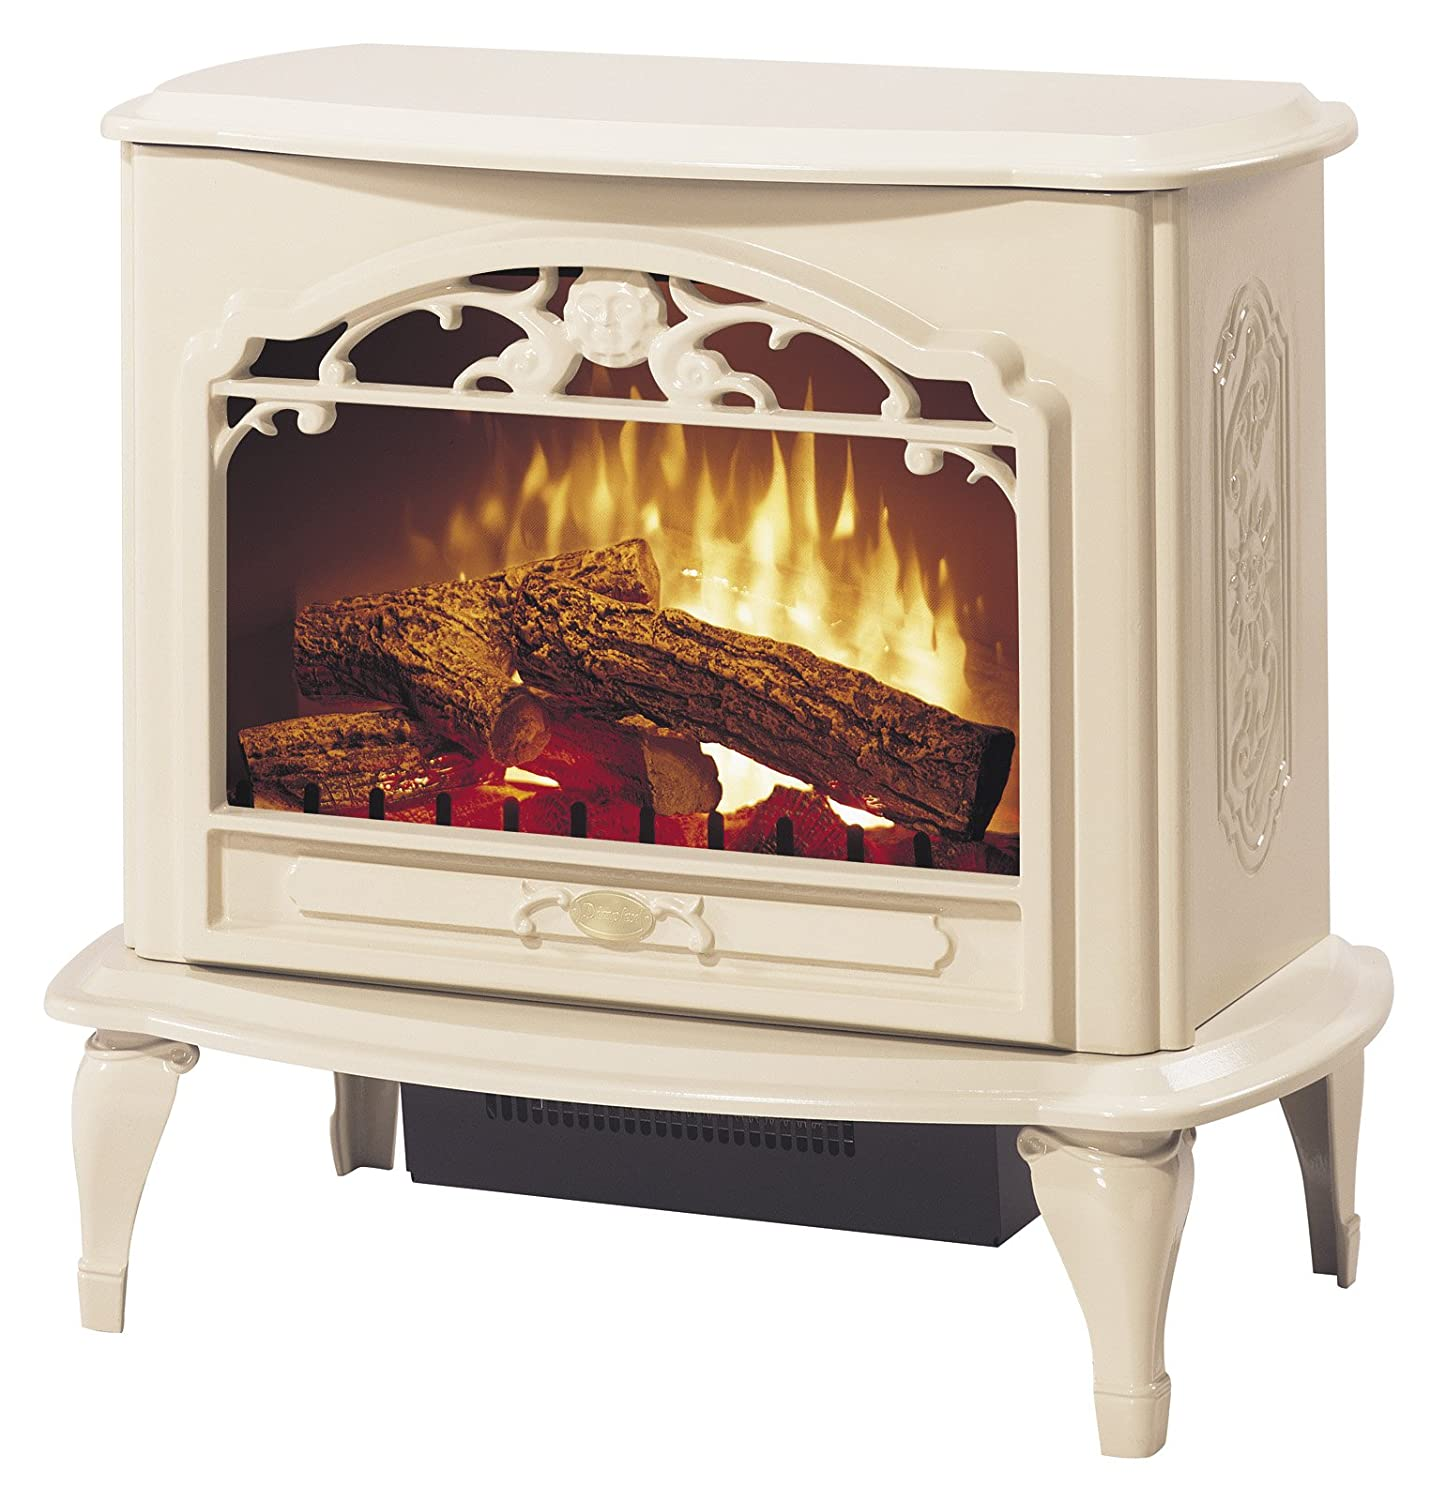 Dimplex TDS8515TC Celeste Electric Stove, Glossy Cream